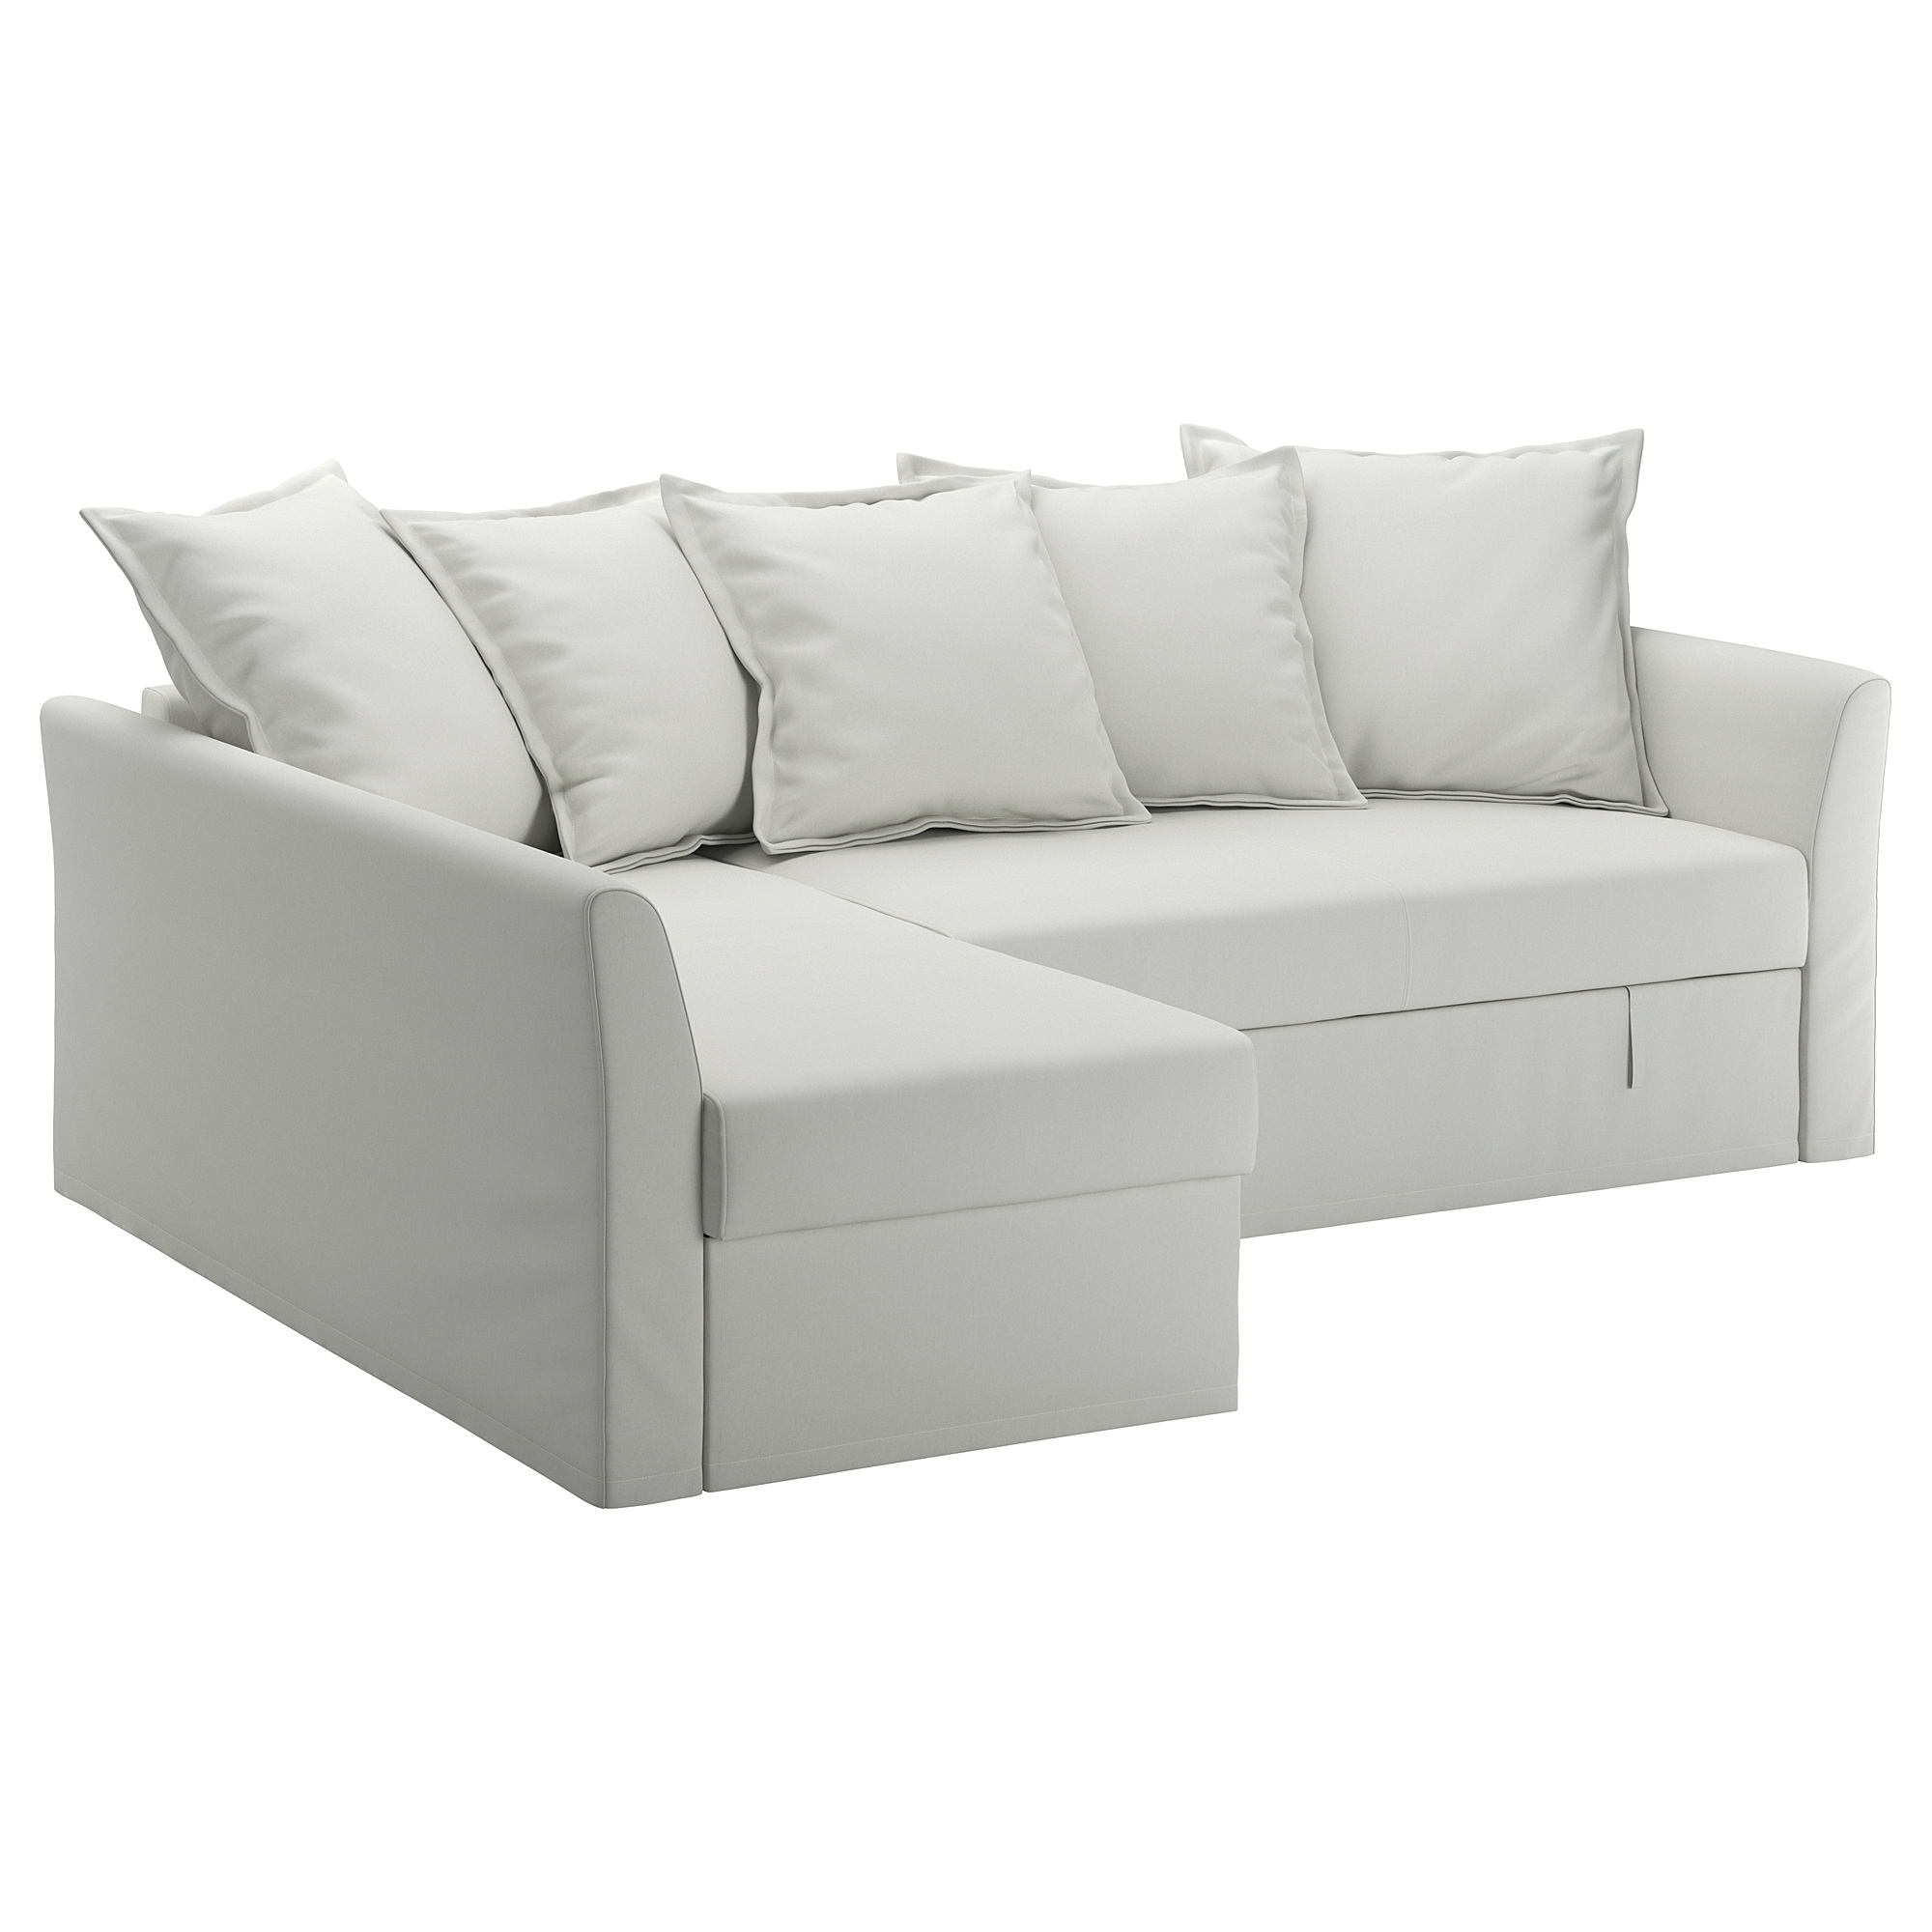 Jannamo Throughout Most Current Ikea Loveseat Sleeper Sofas (Gallery 12 of 15)